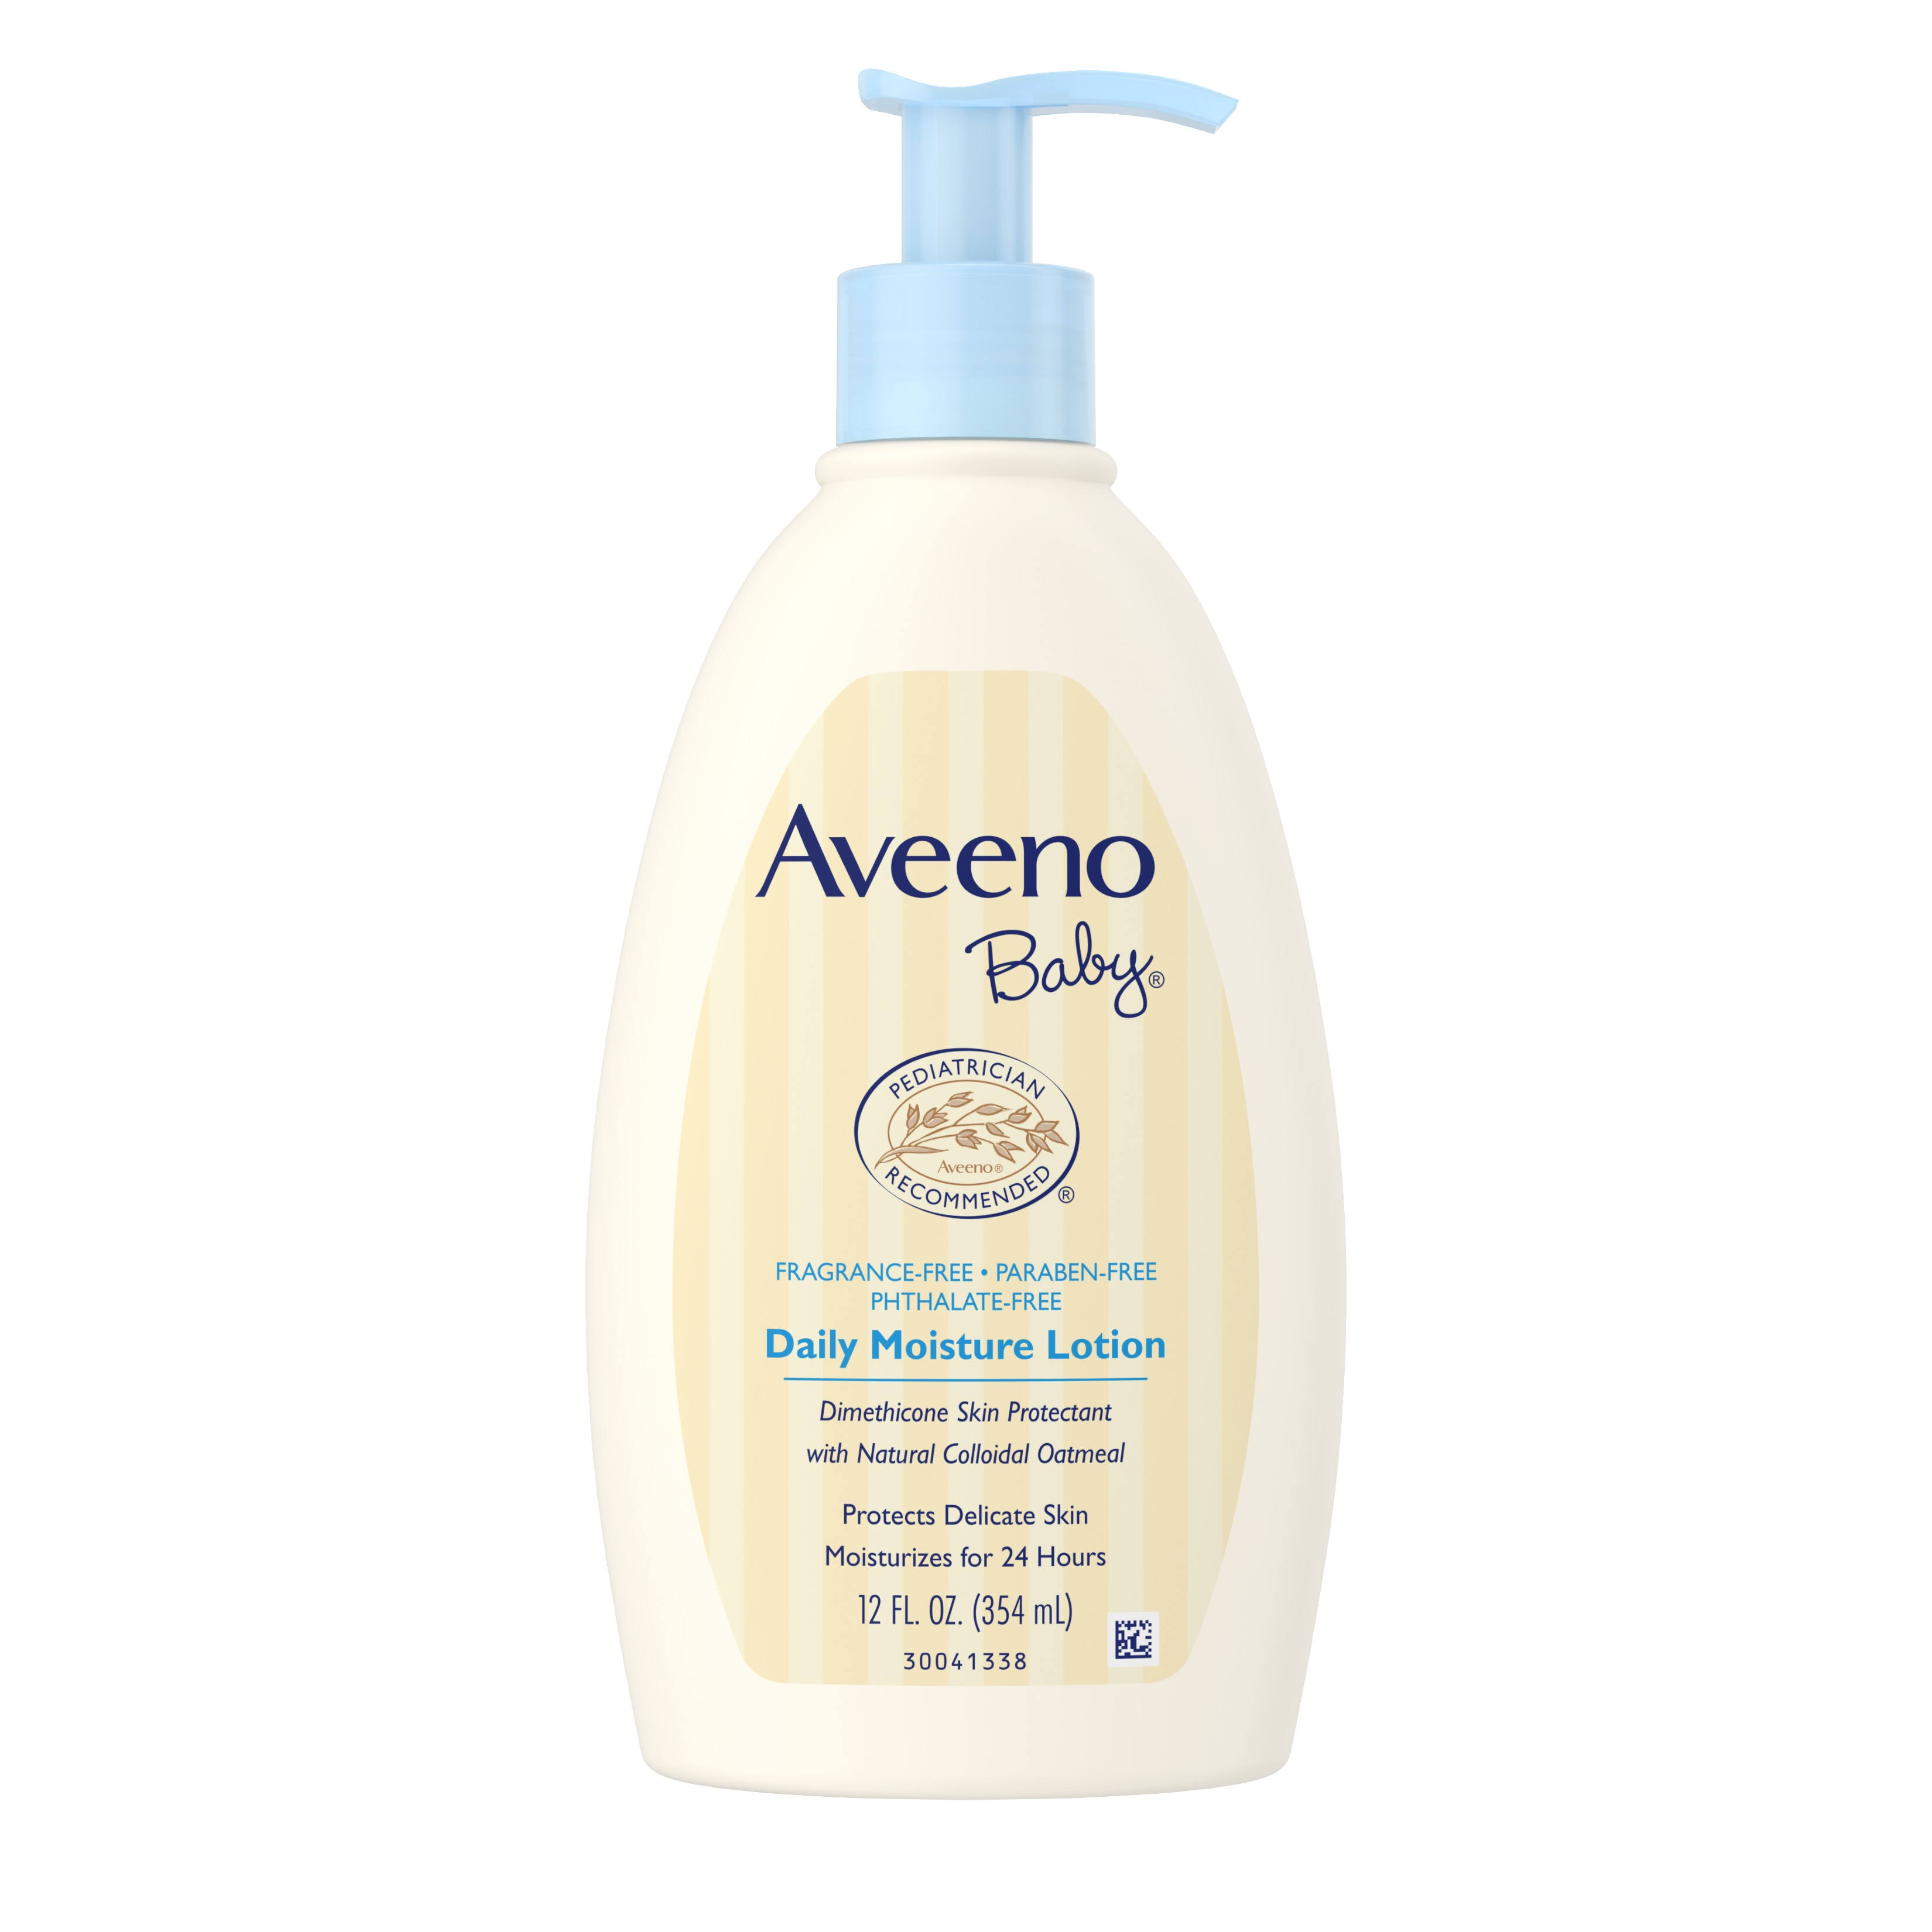 Aveeno Baby Daily Moisture Lotion - 354ml